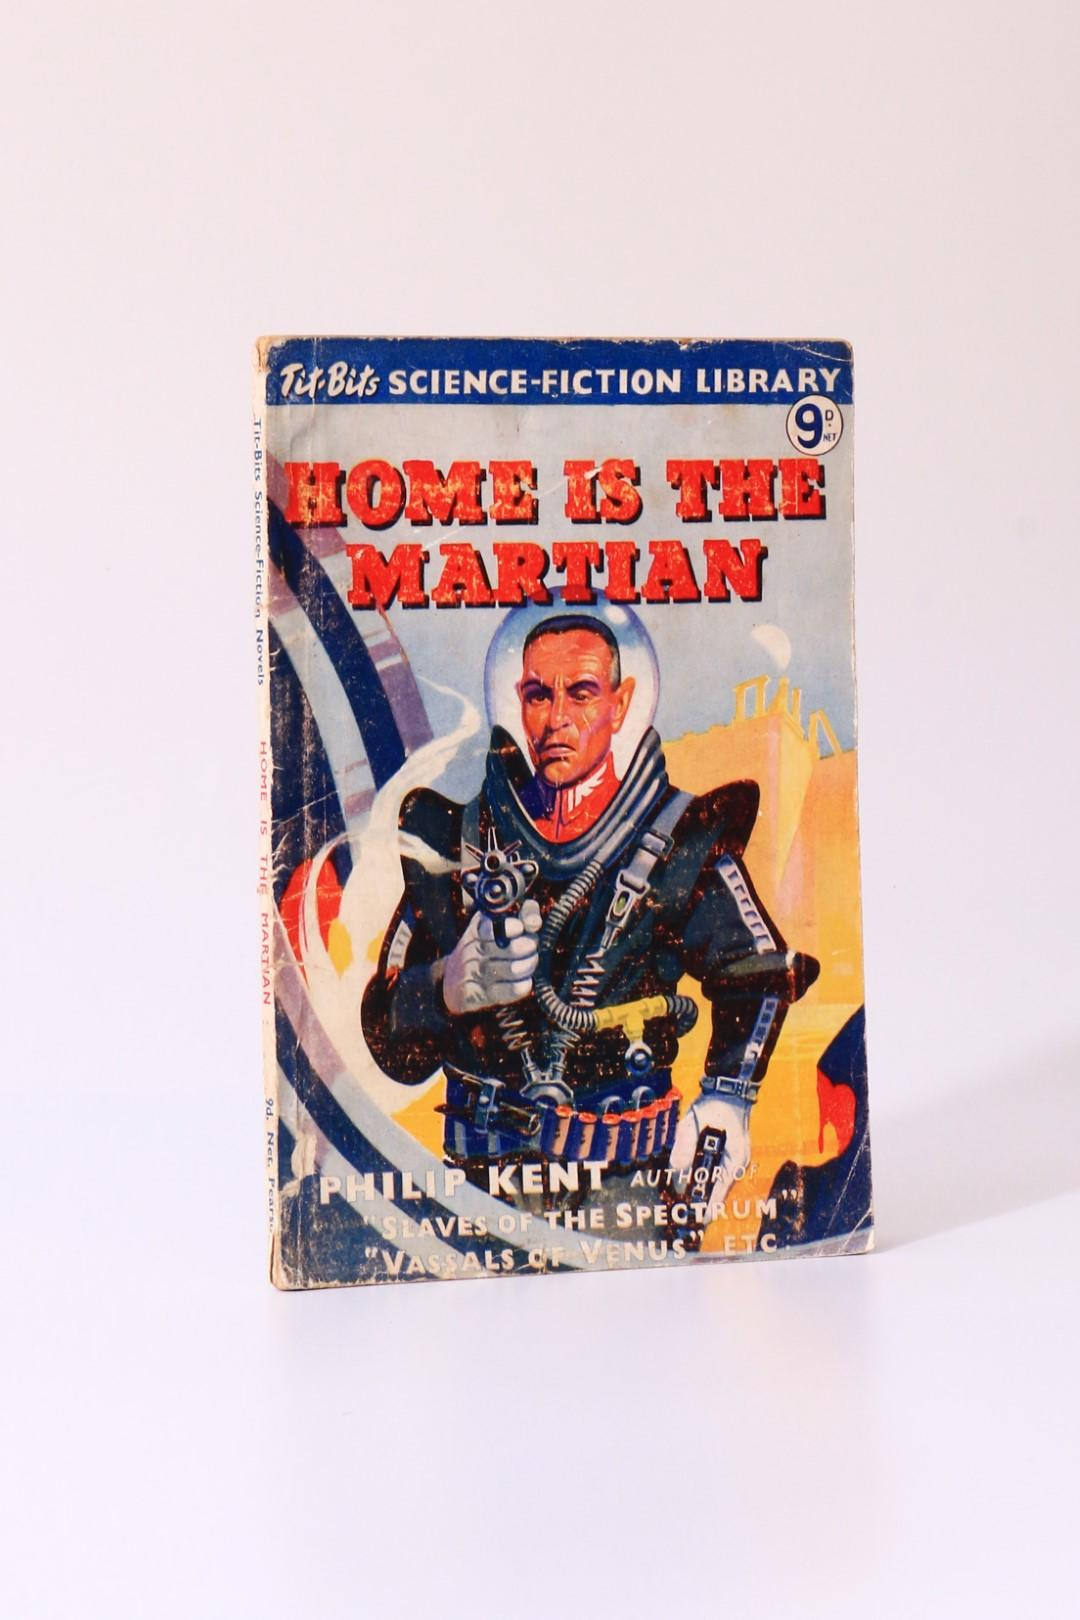 Philip Kent [Ken Bulmer] - Home is the Martian - Pearson / Tit-Bits SF Library, n.d. [1954], First Edition.